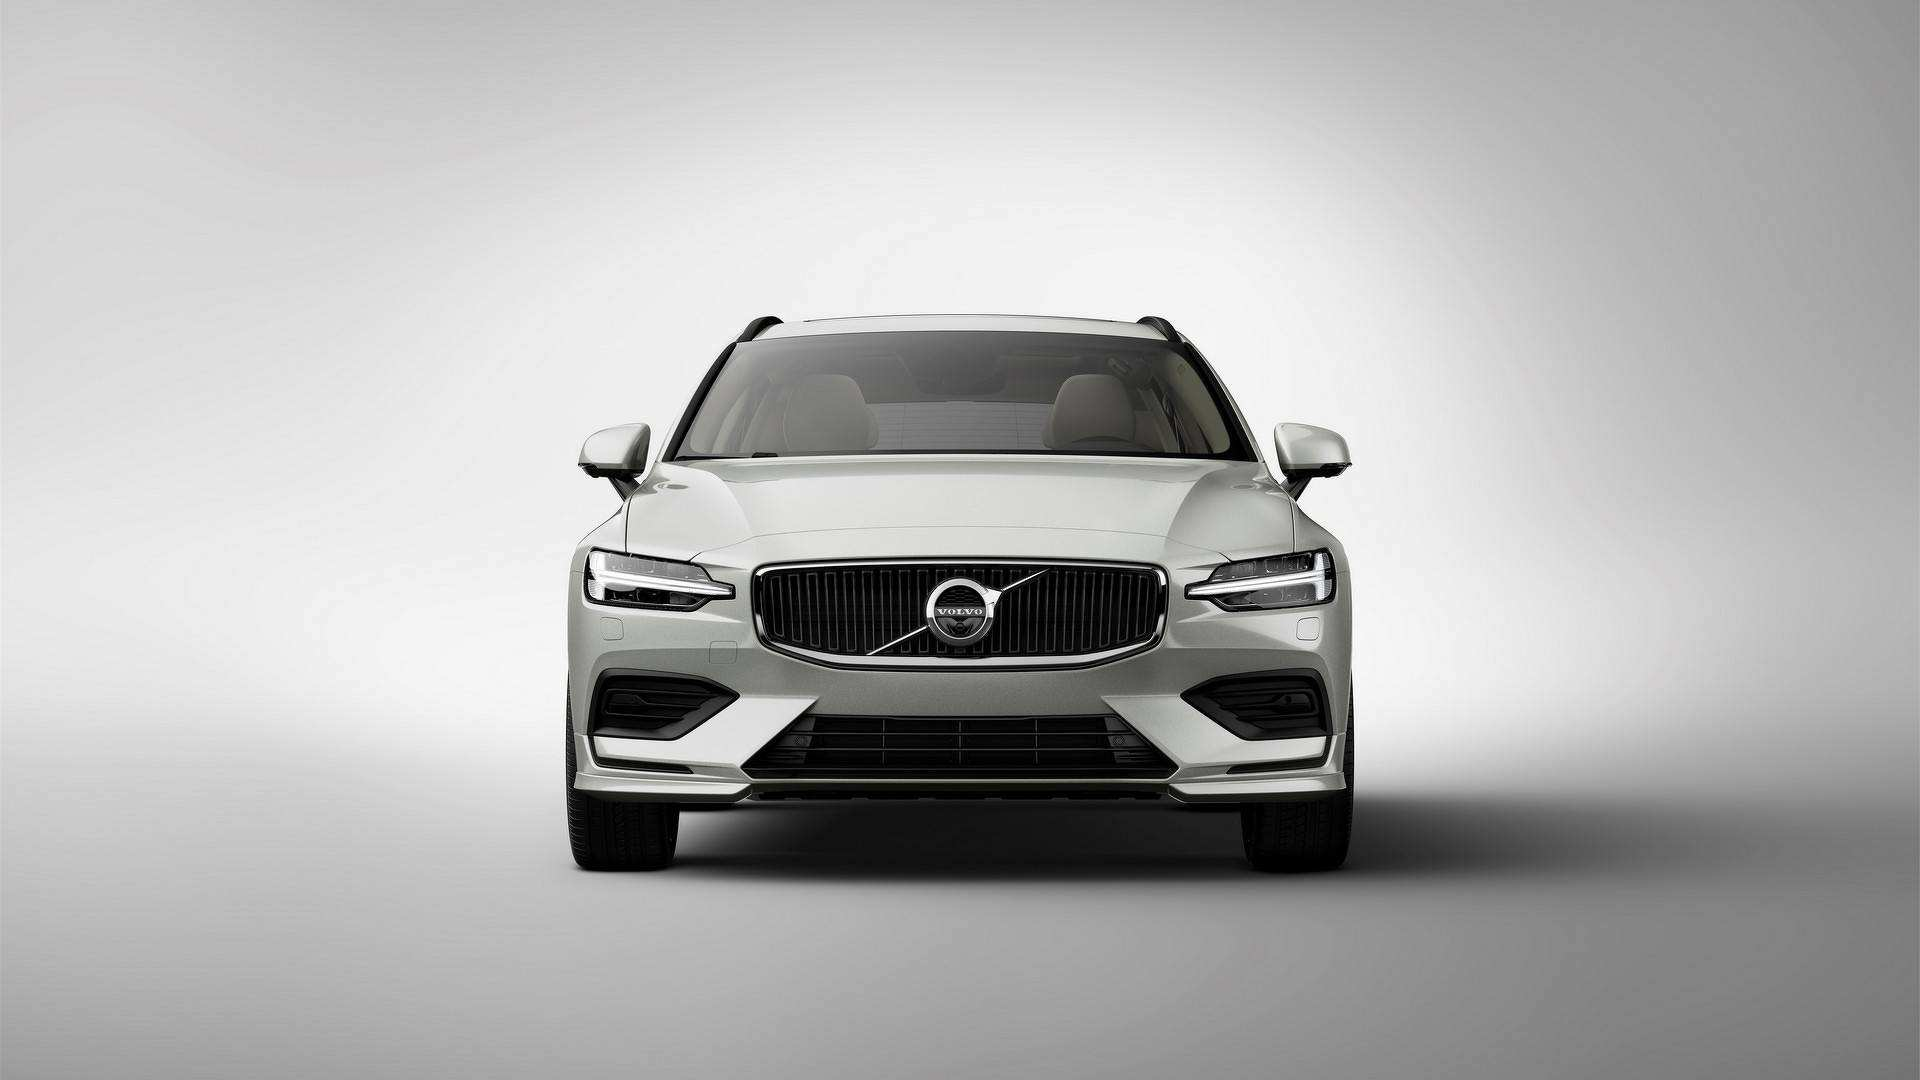 65 Concept of Volvo V60 2020 Dimensions Picture with Volvo V60 2020 Dimensions